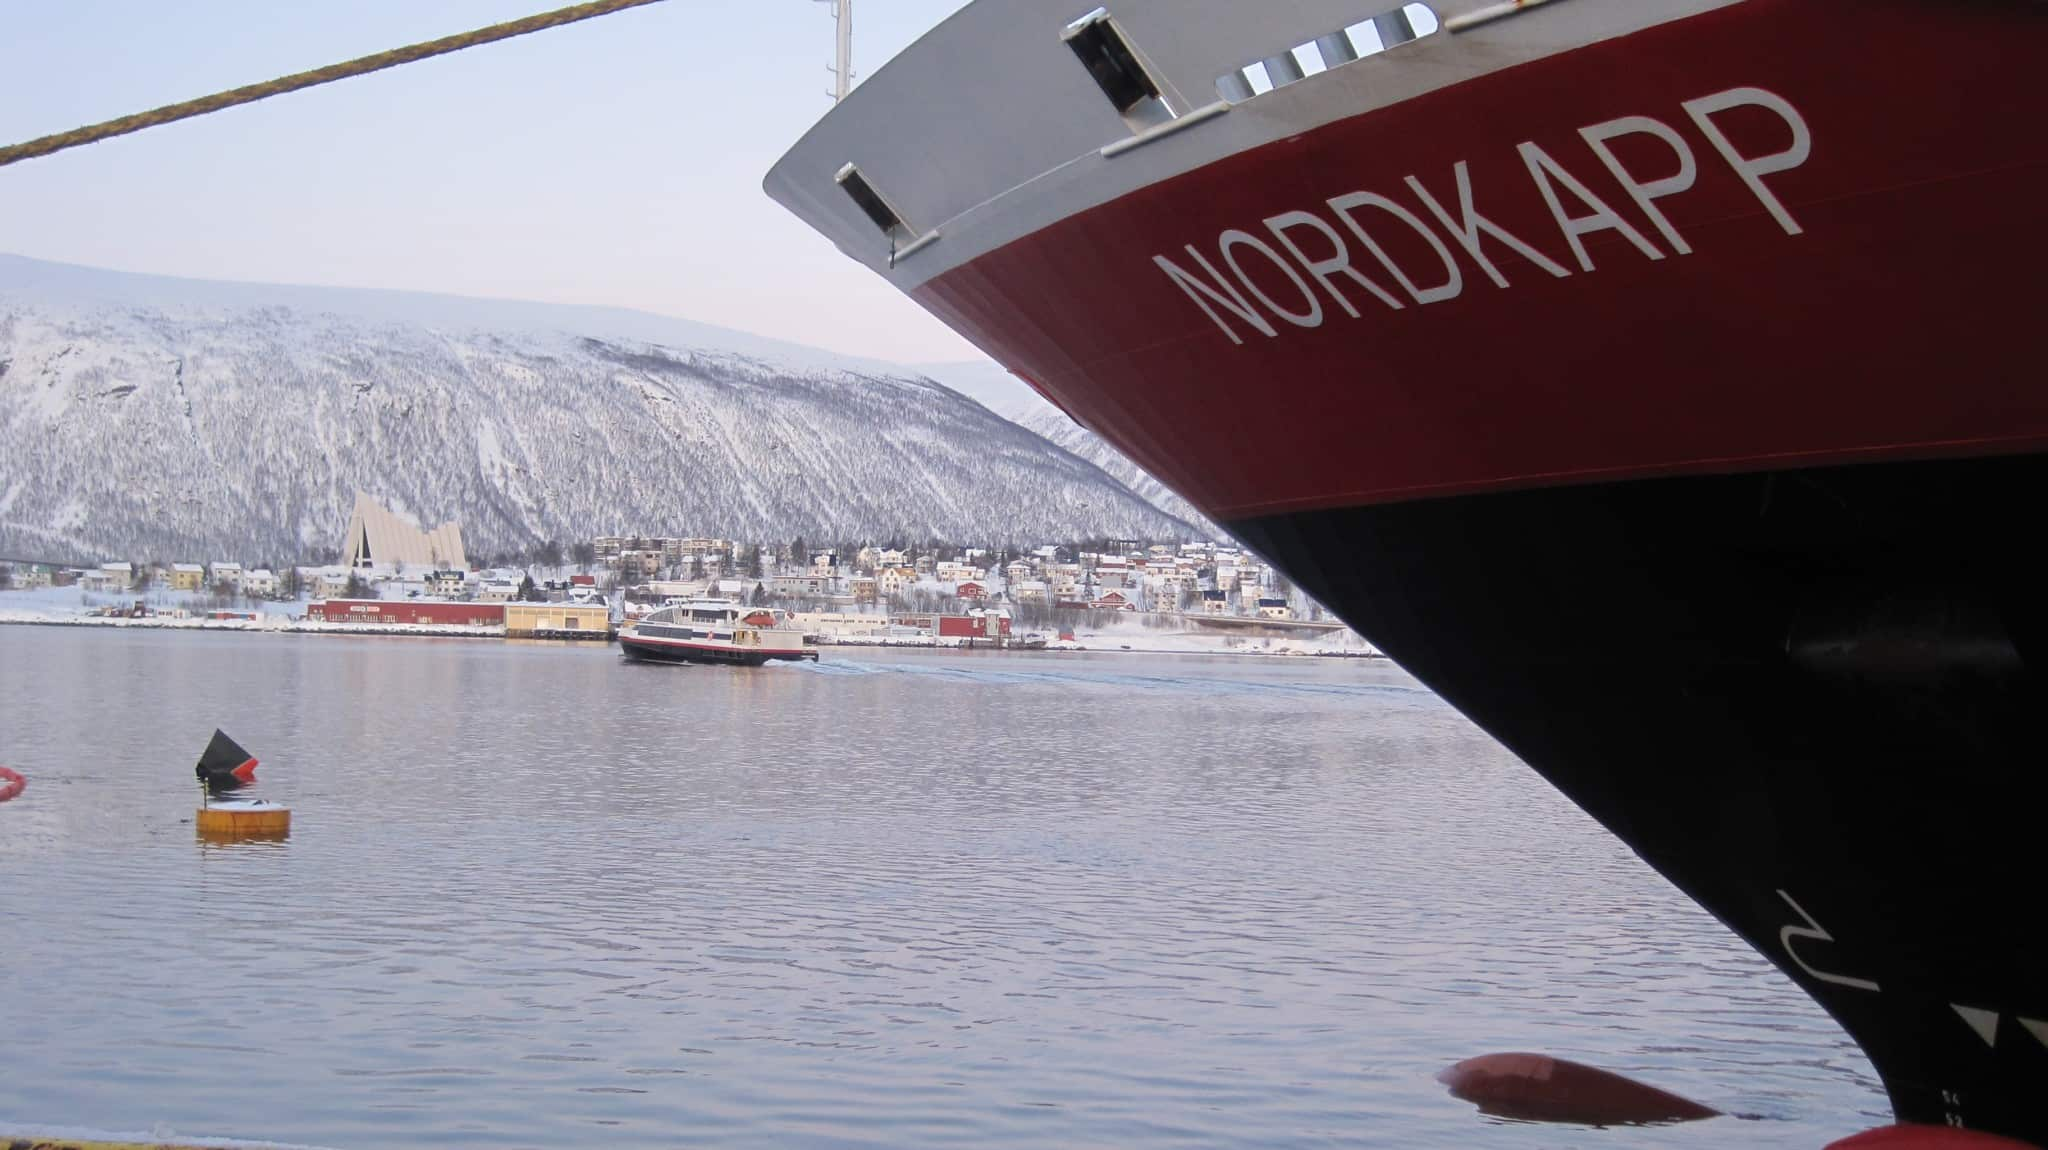 Thanks to Hurtigruten you can easily discover all that the Norwegian coast has to offer: from fjords and iconic cities to the northern lights and the midnight sun.